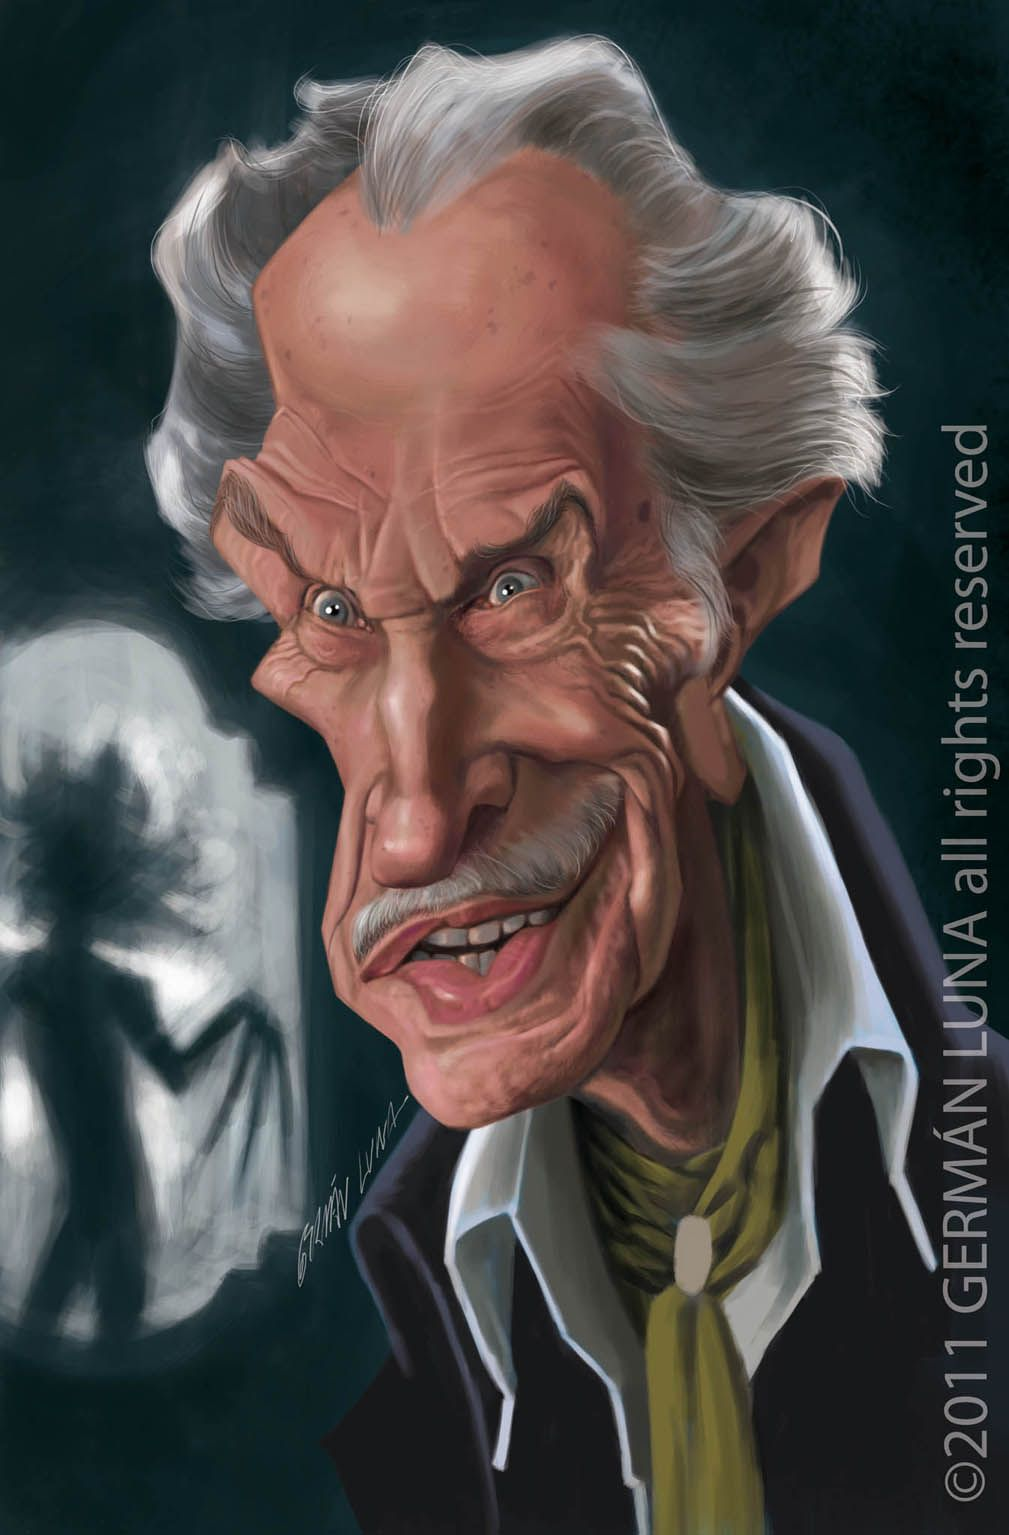 Vincent Price | Funny cartoon faces, Celebrity caricatures ...